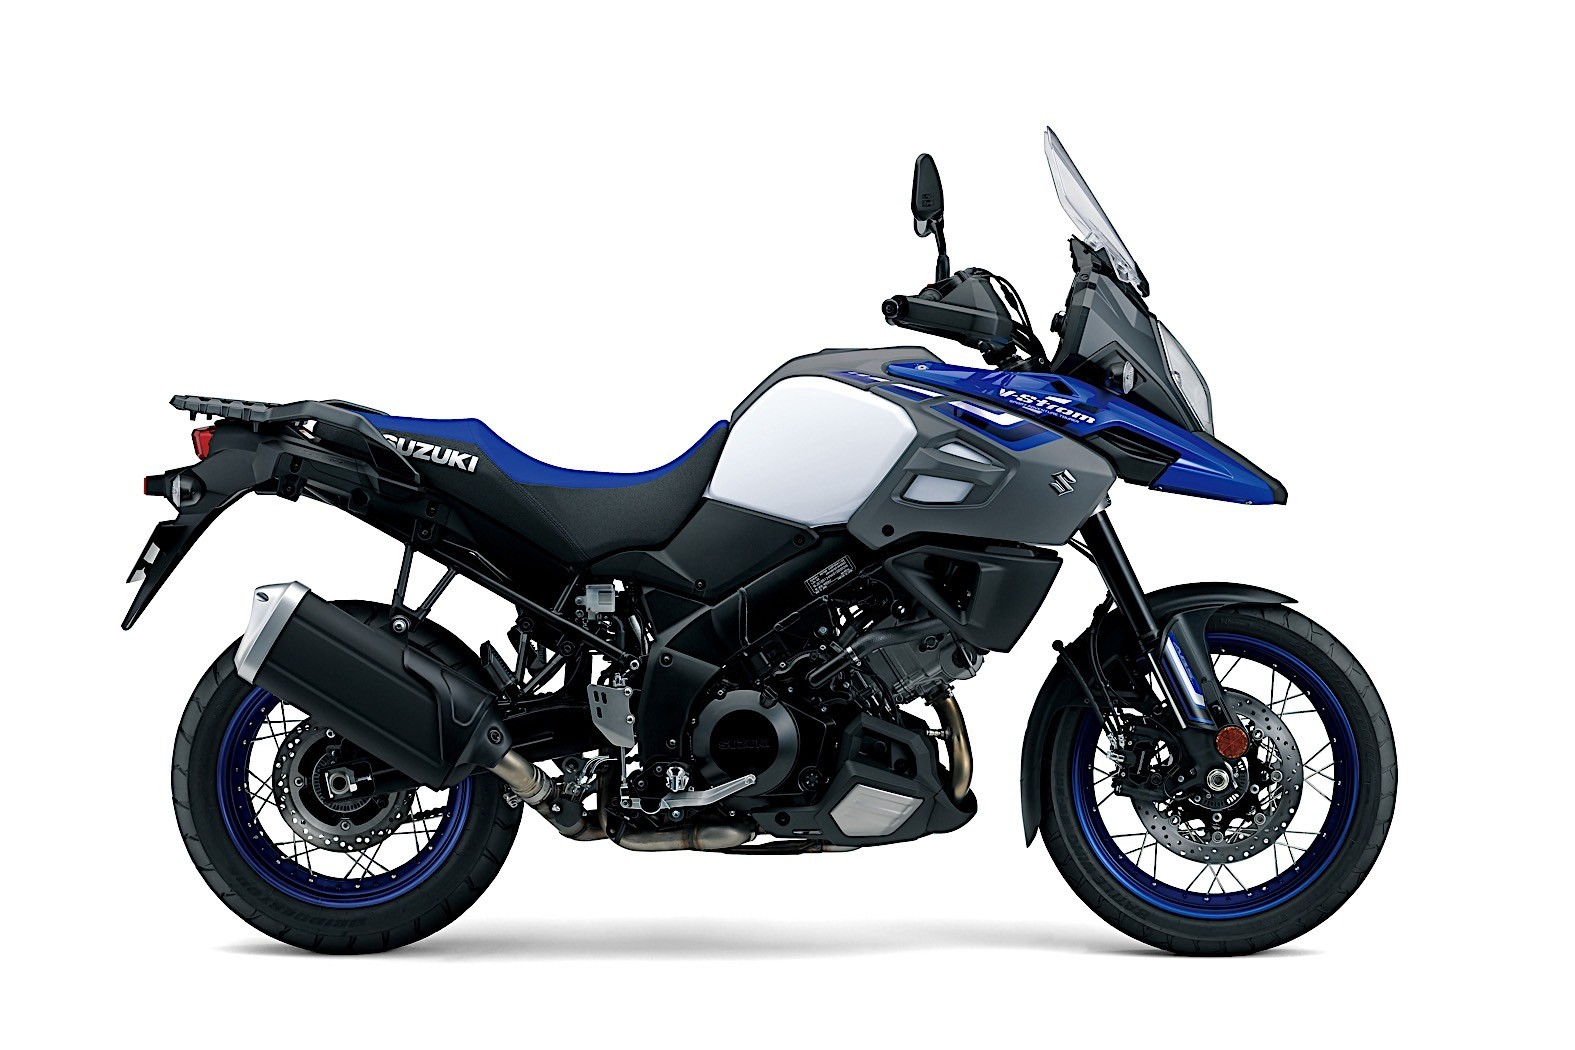 2019-suzuki-motorcycles-shine-in-new-colors-at-the-motorcycle-live-10